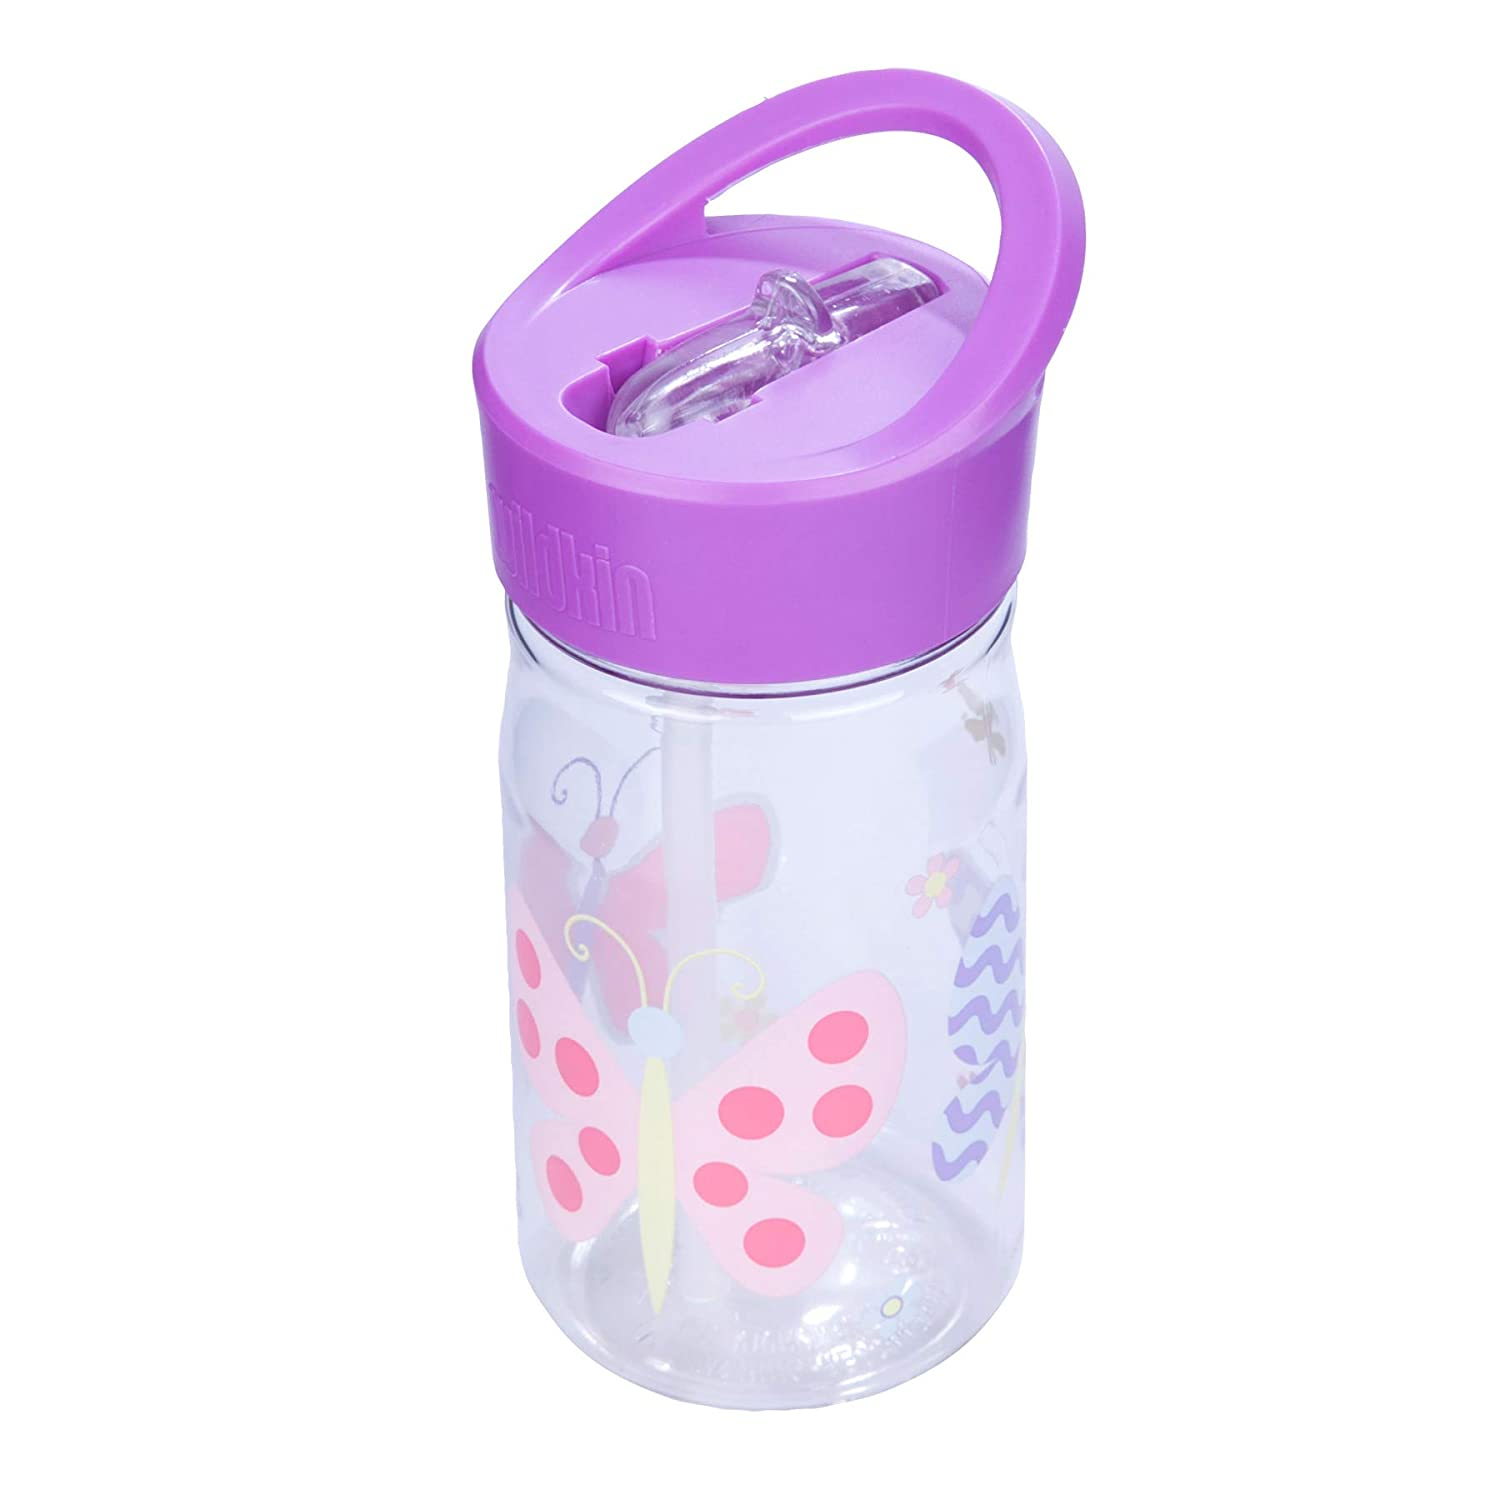 Olive Kids Design Features Flip-Top Straw and Top Carrying Handle Dinosaur Land BPA-Free Perfect for Promoting Hydration On-the-Go Wildkin 16oz Water Bottle